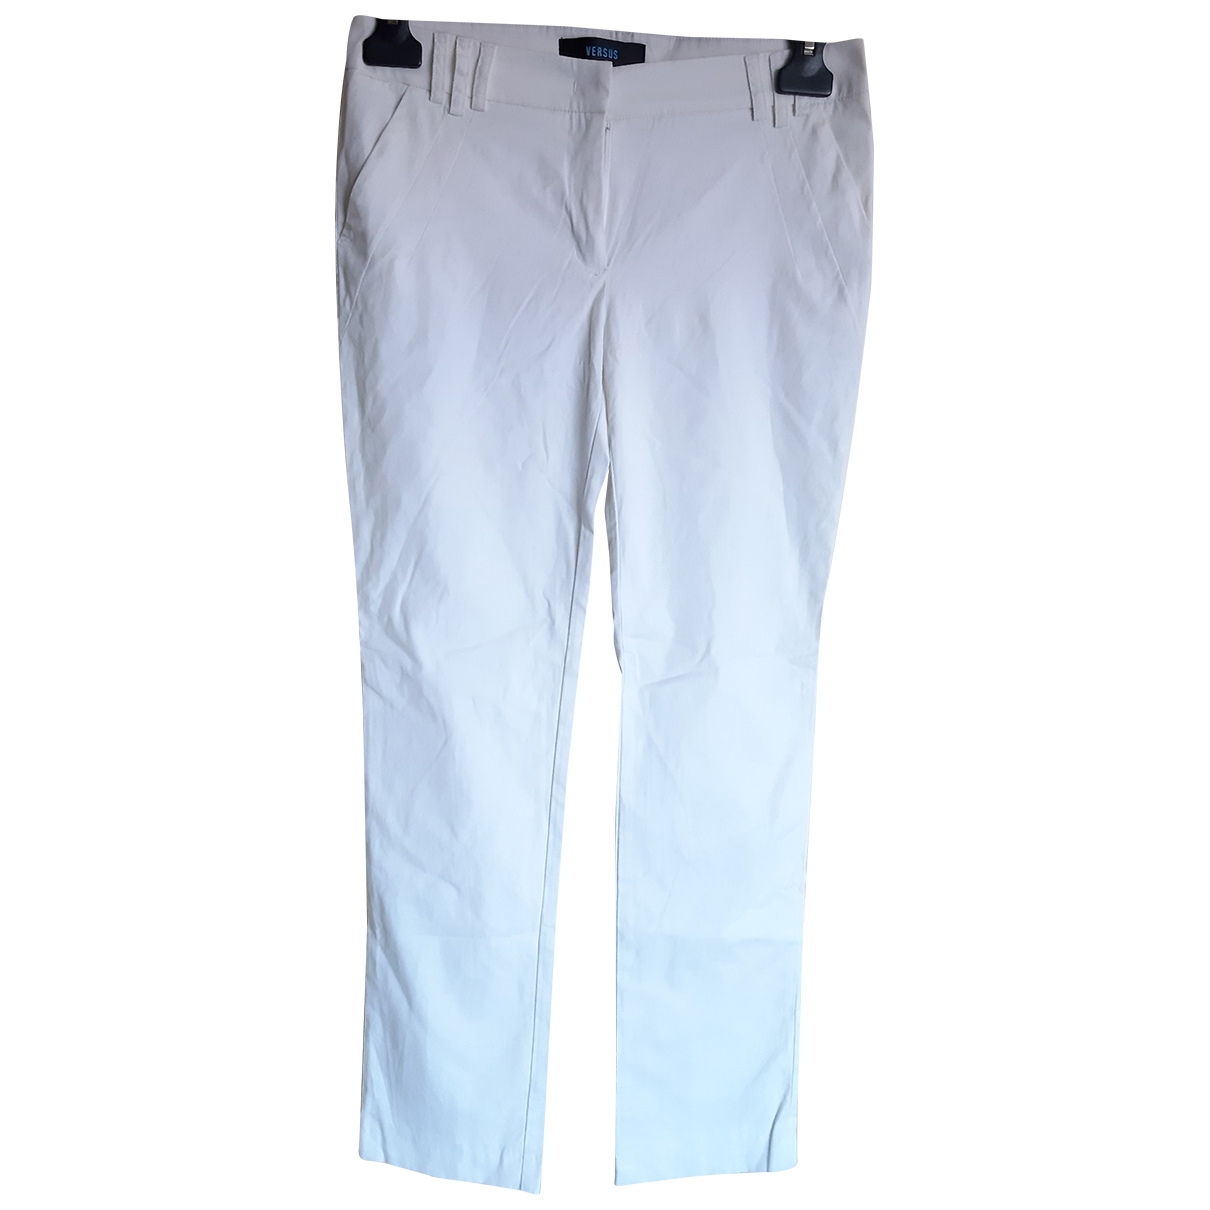 Versus \N White Cotton Trousers for Women 40 IT